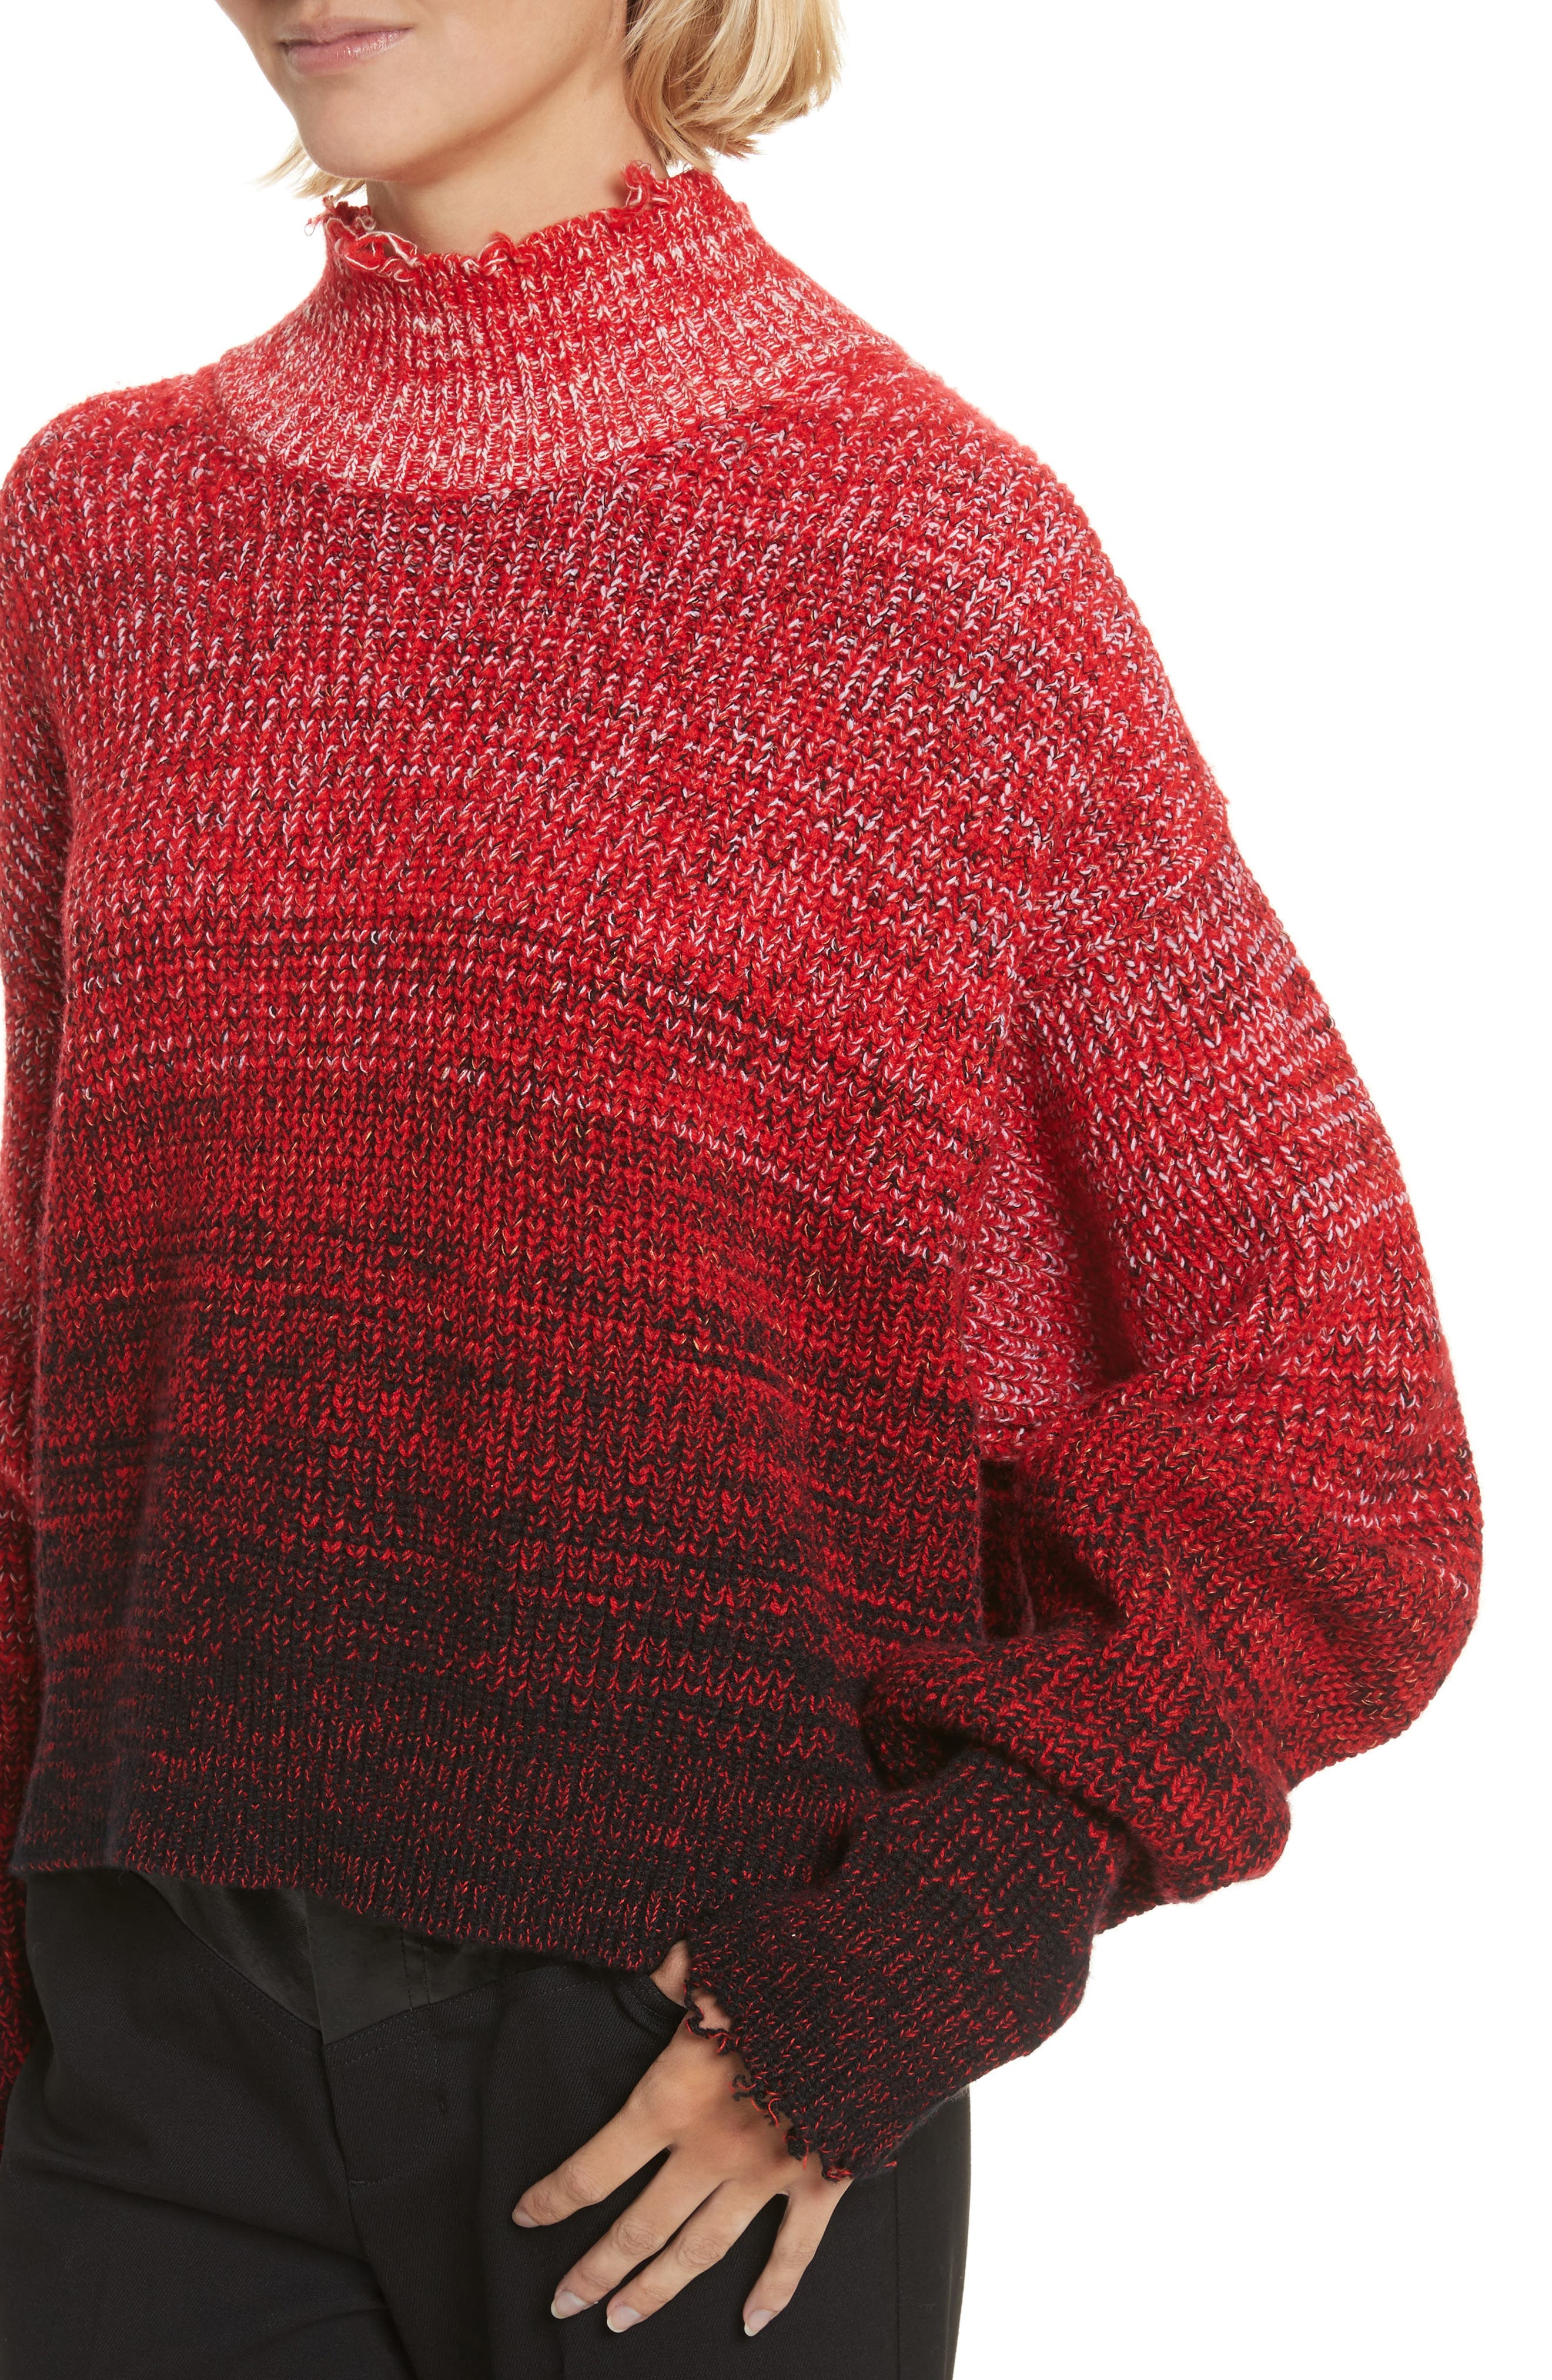 Distressed Marled Patchwork Turtleneck Sweater,                             Alternate thumbnail 4, color,                             641